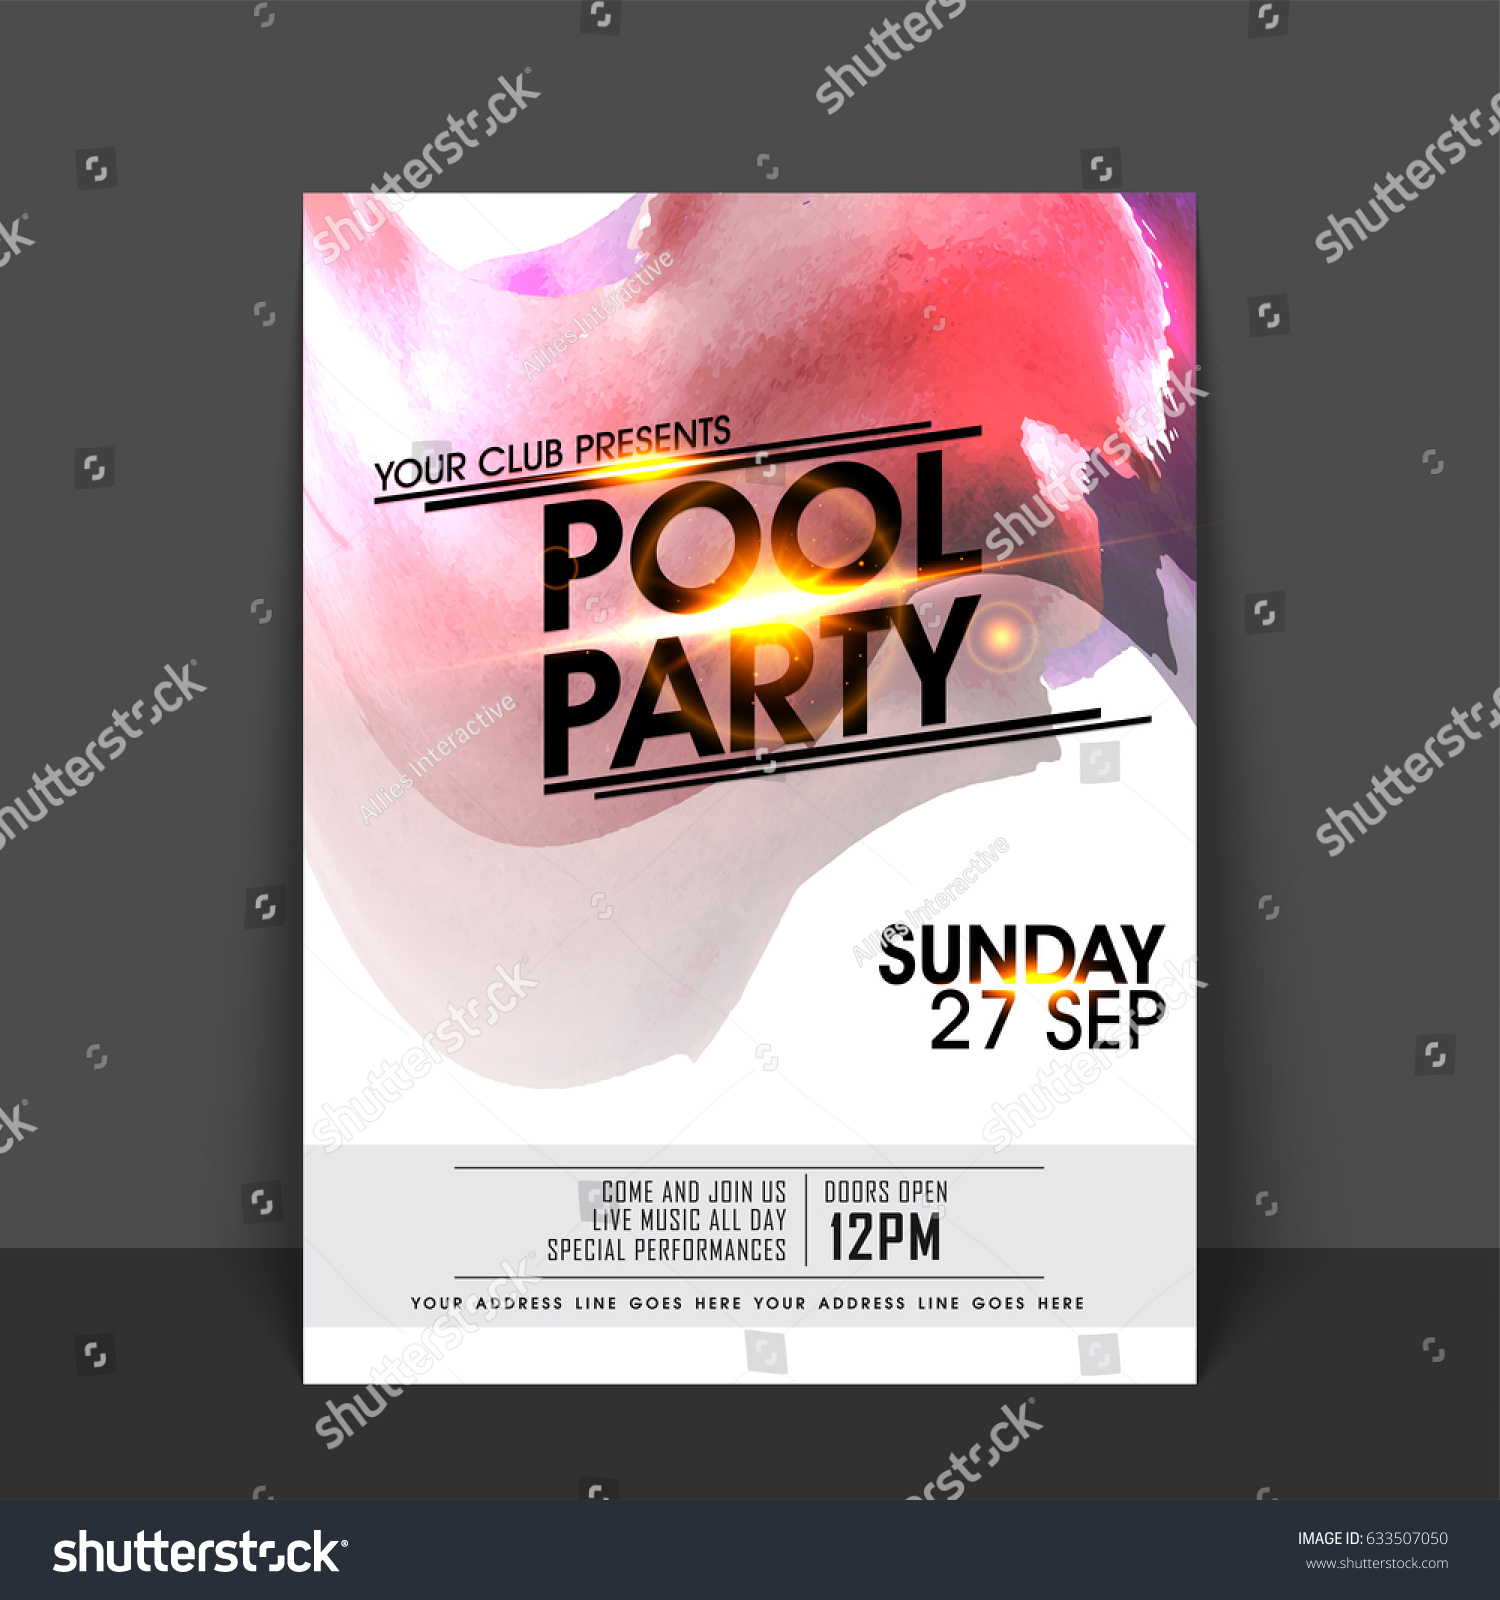 Pool Party Flyer Template Banner Design Vector 633507050 – Pool Party Flyer Template